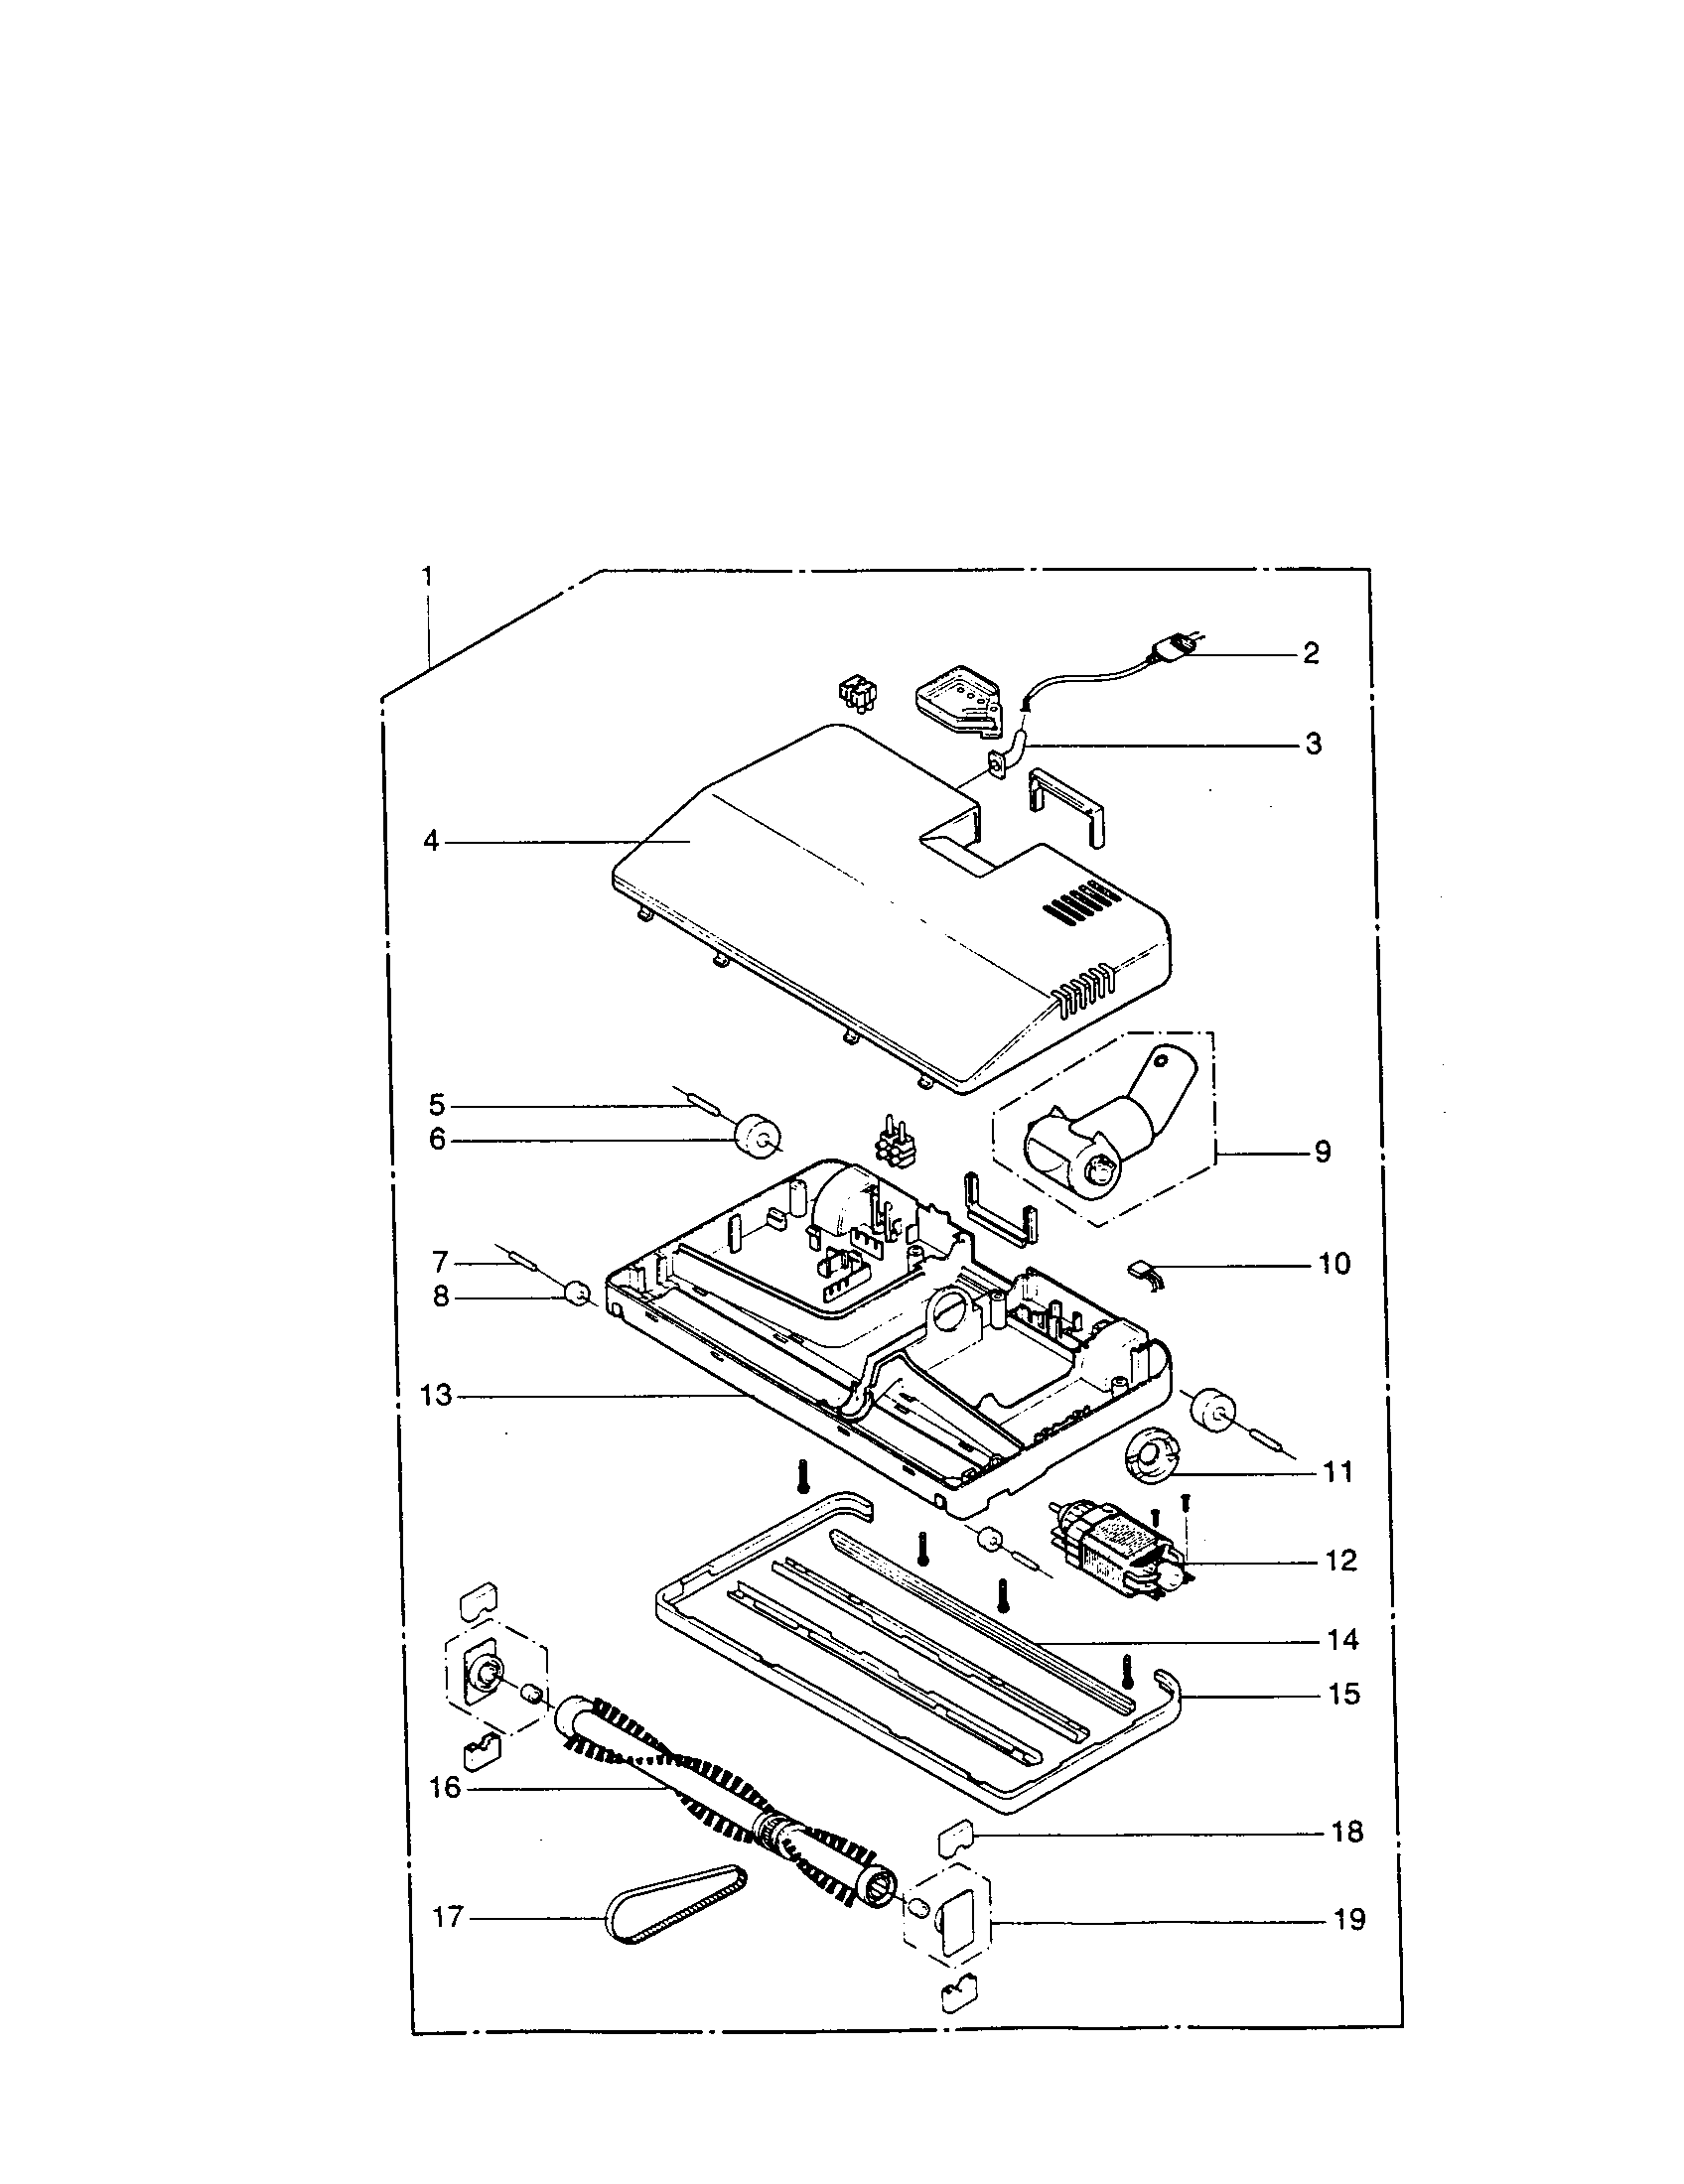 POWER-MATE Diagram & Parts List for Model 72121295000